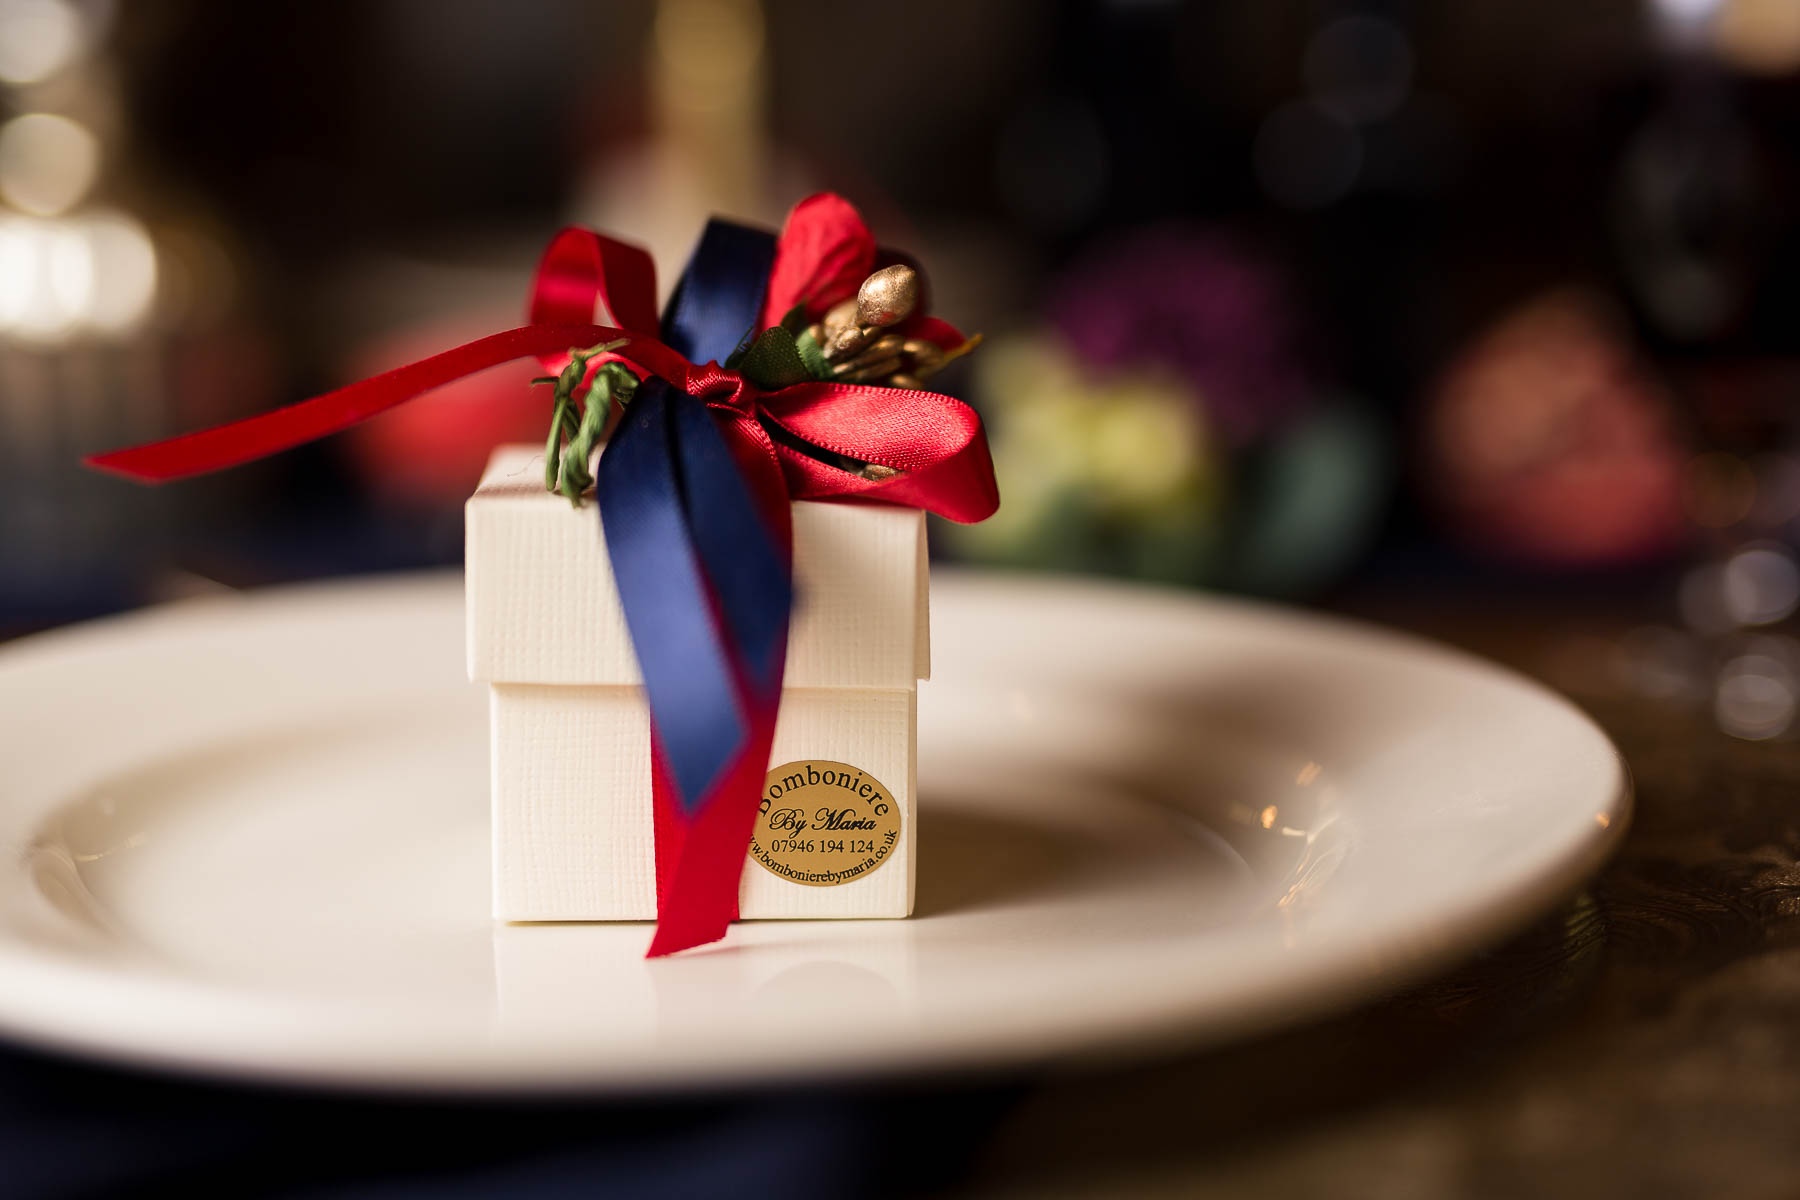 Red berry and Navy wedding favours